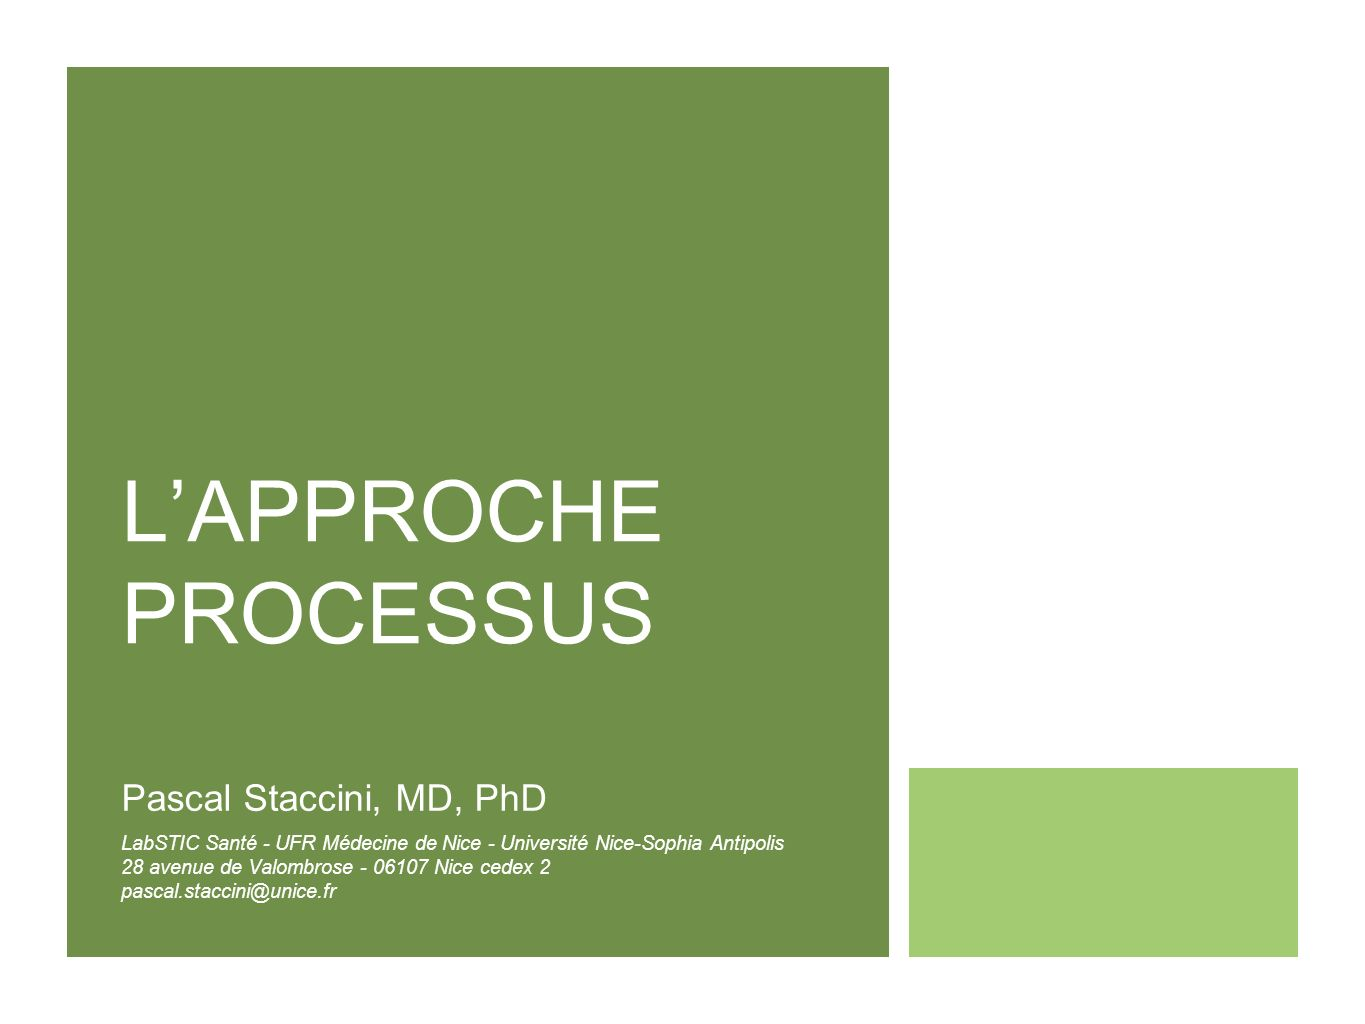 L'APPROCHE PROCESSUS Pascal Staccini, MD, PhD